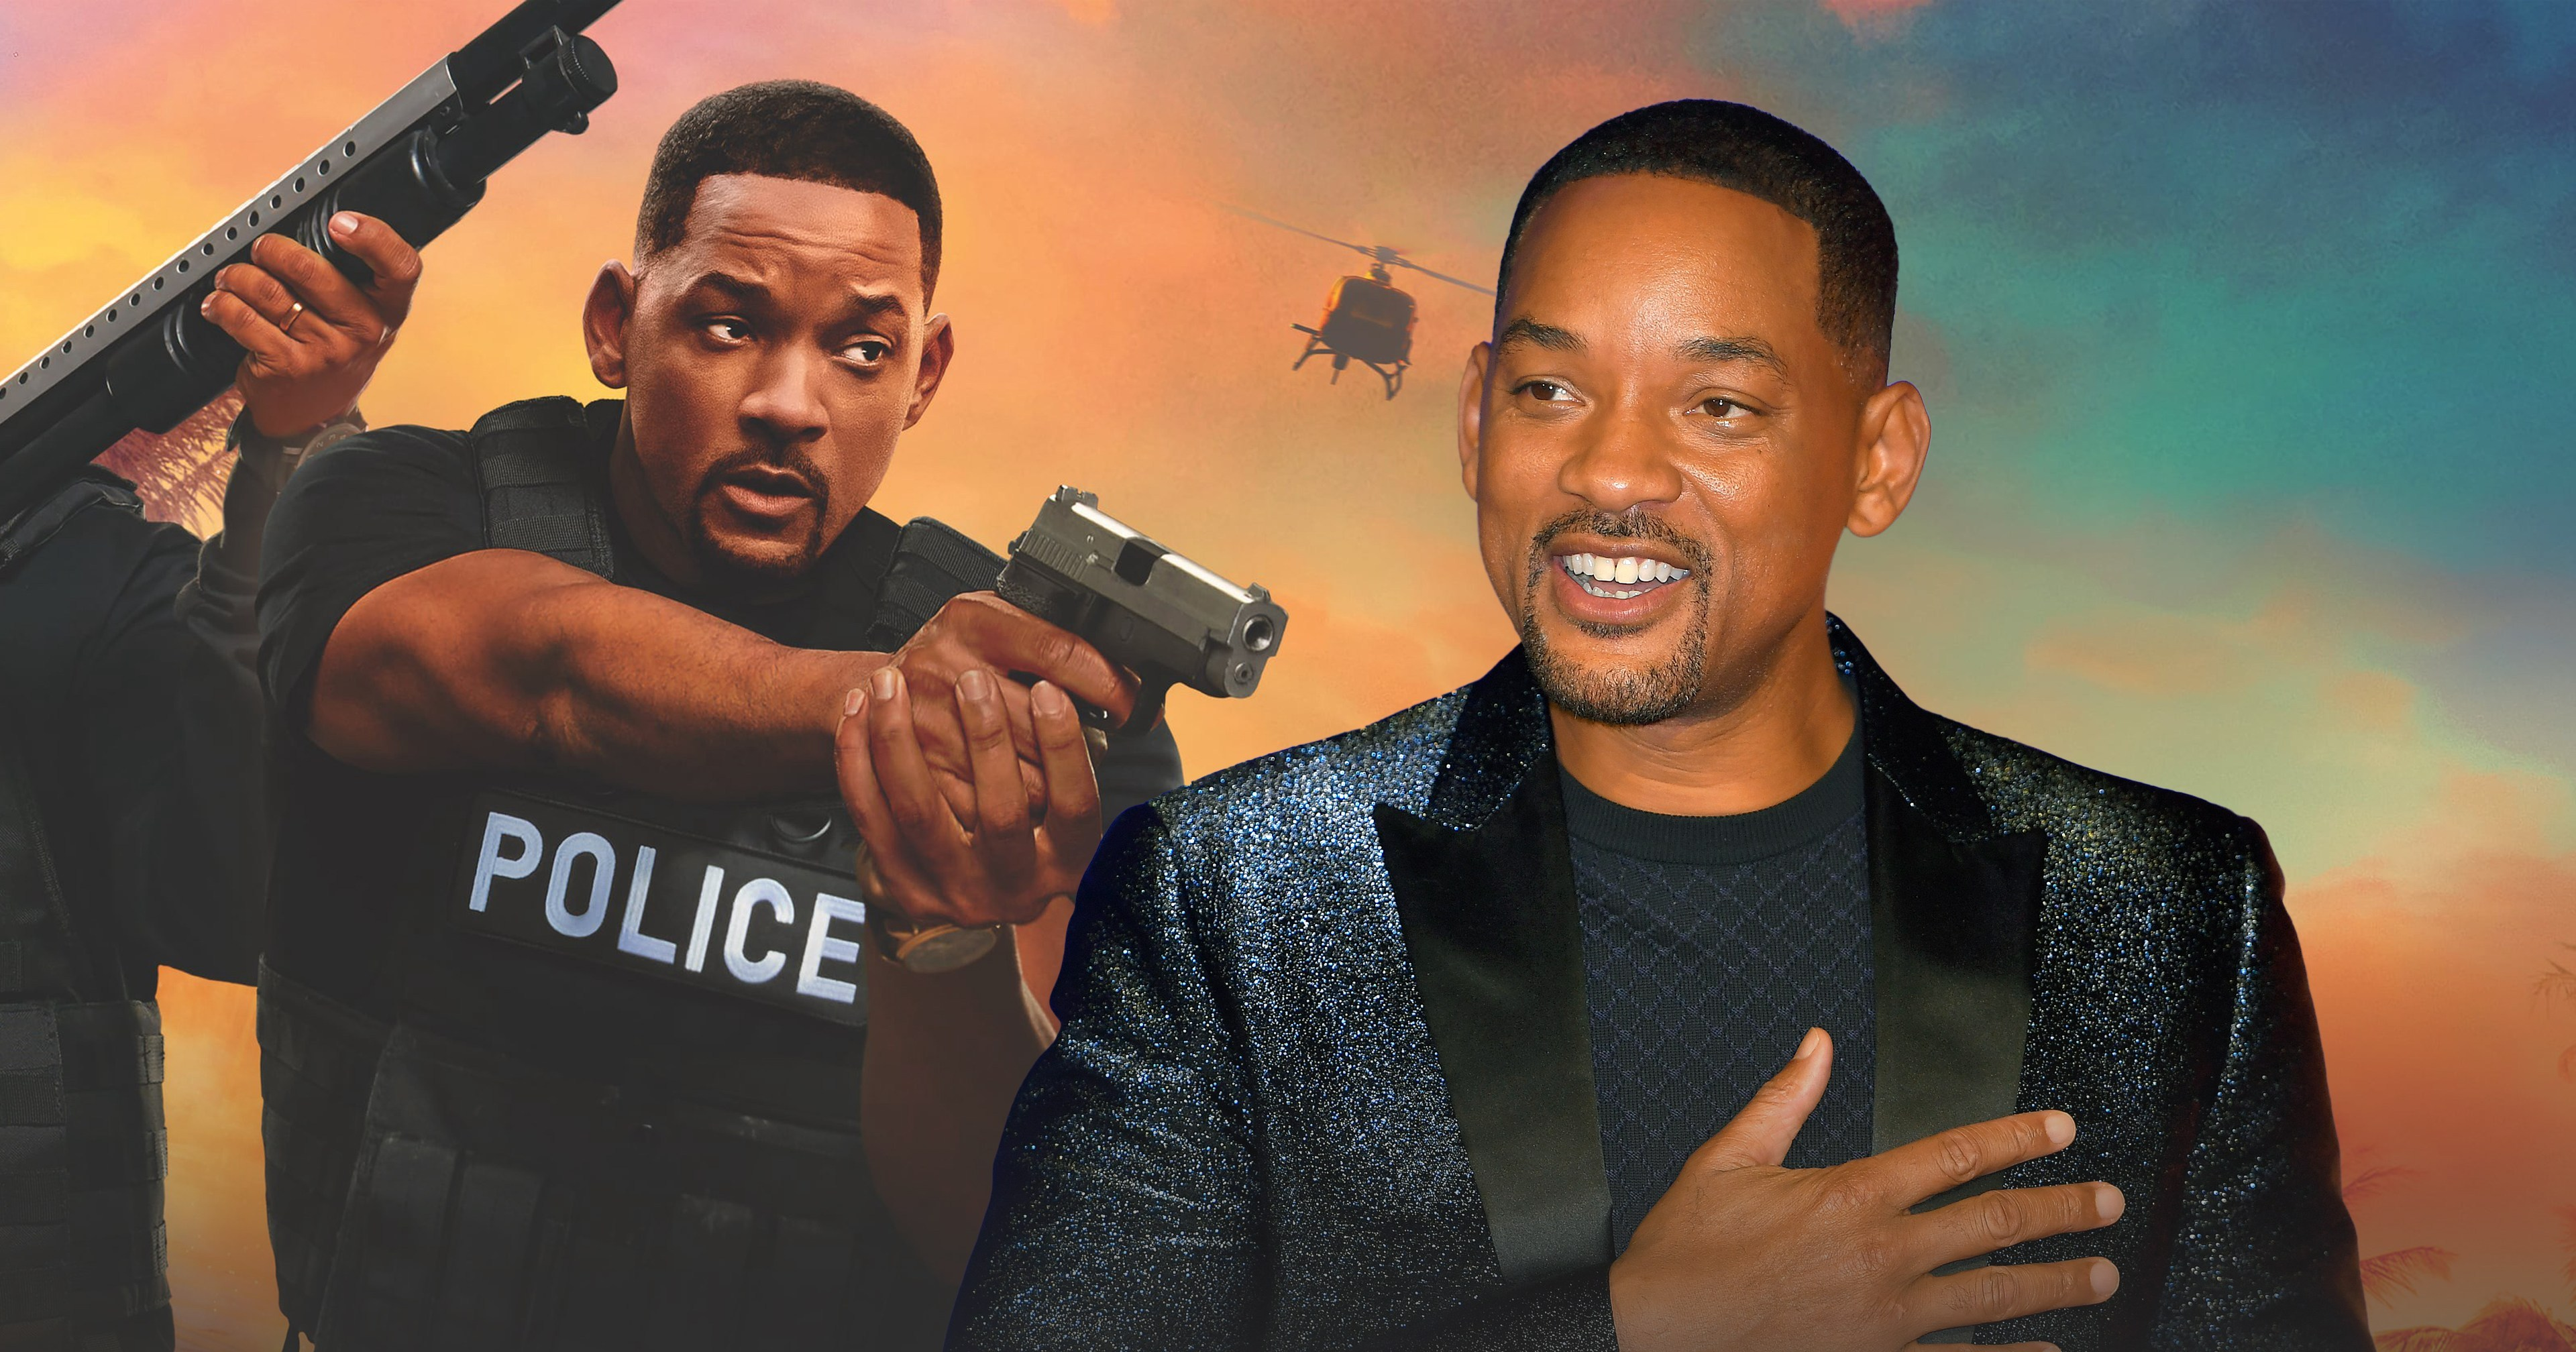 Bad Boys 3 almost had very different ending killing off Will Smith's character Mike Lowrey